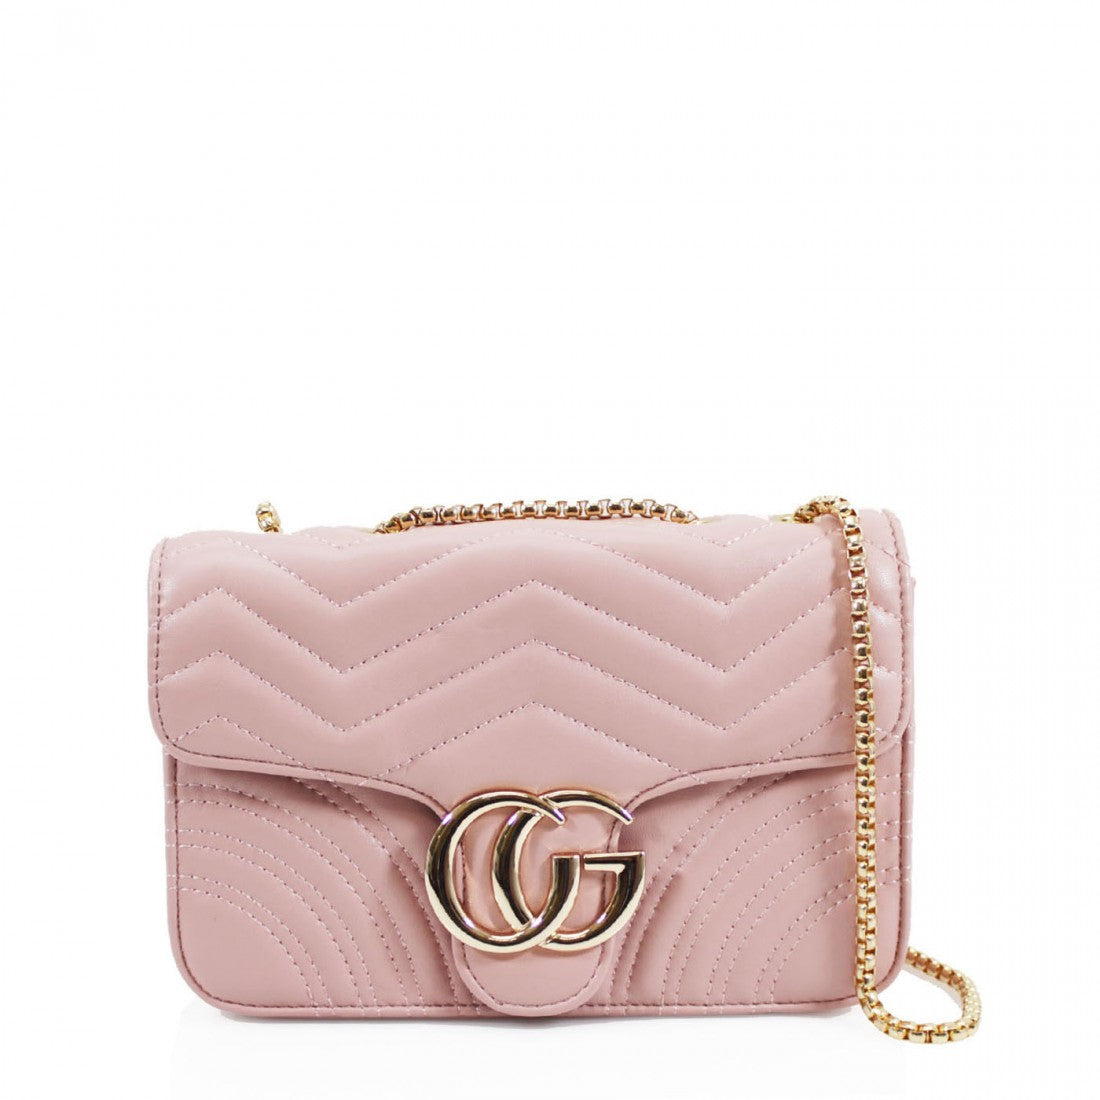 4f0ddce18 Talia Crossbody Gucci Inspired Marmont Bag - Pink – Style Of Beyond